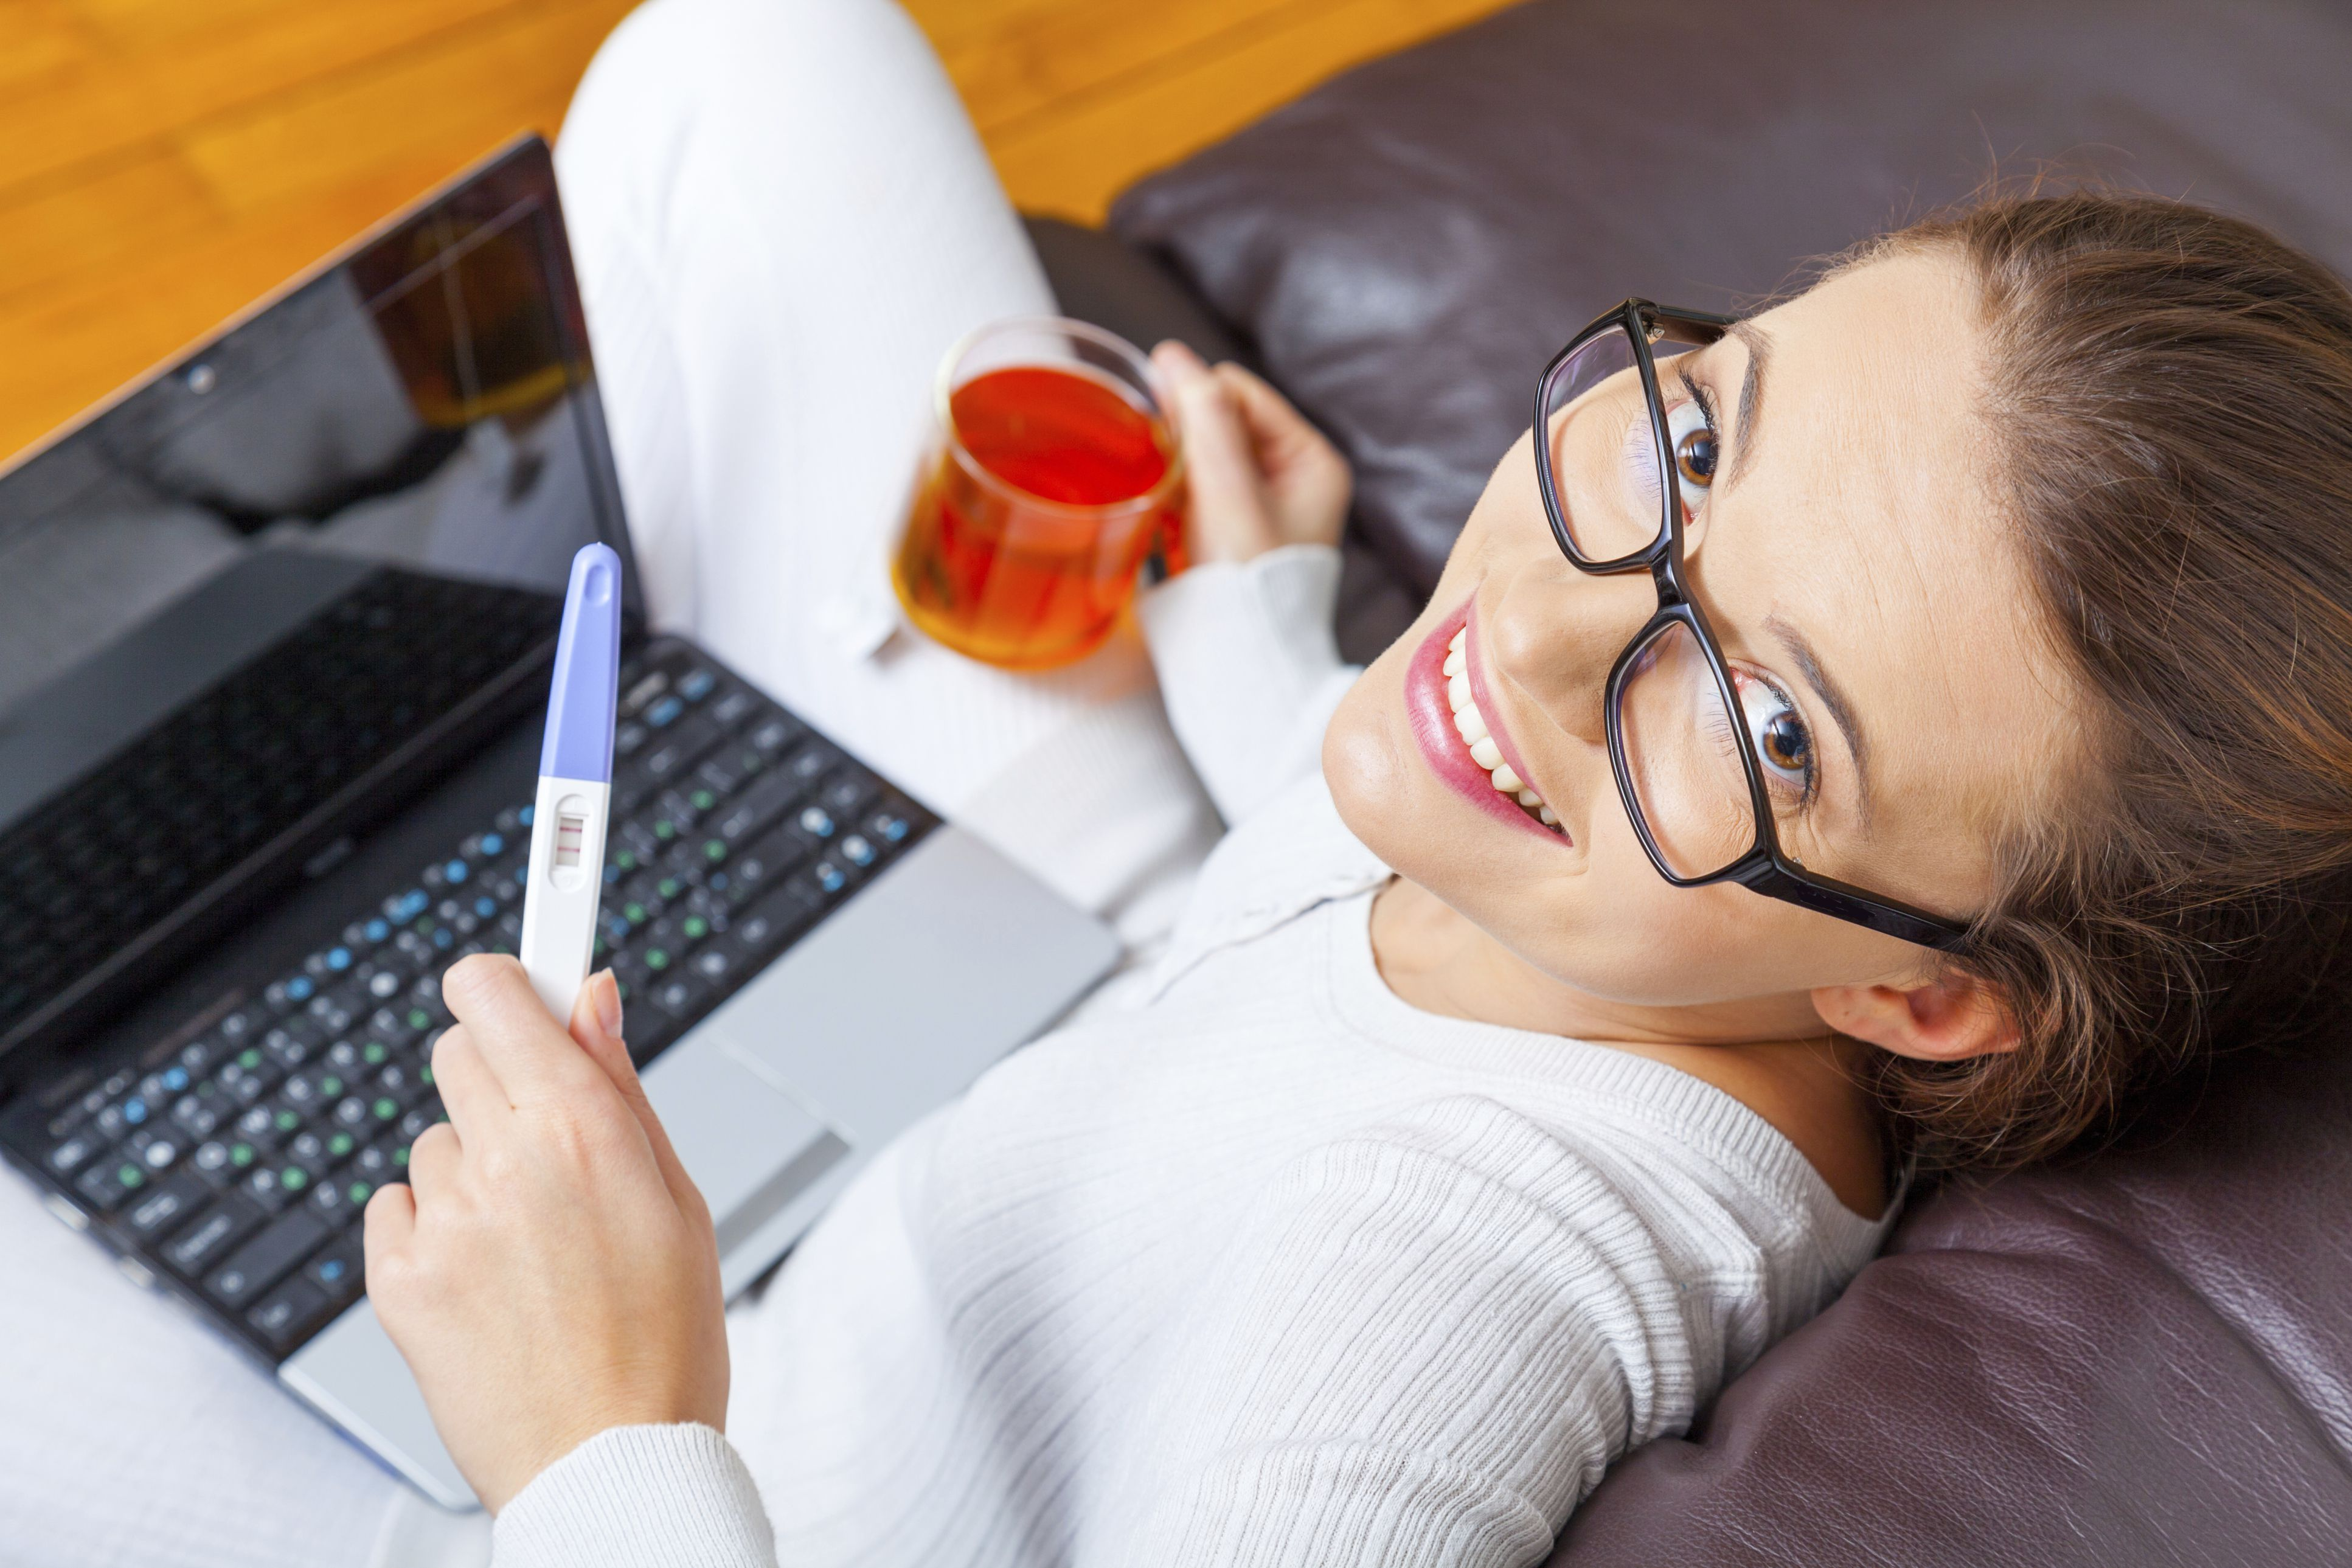 Woman holding positive pregnancy test result and cup of tea